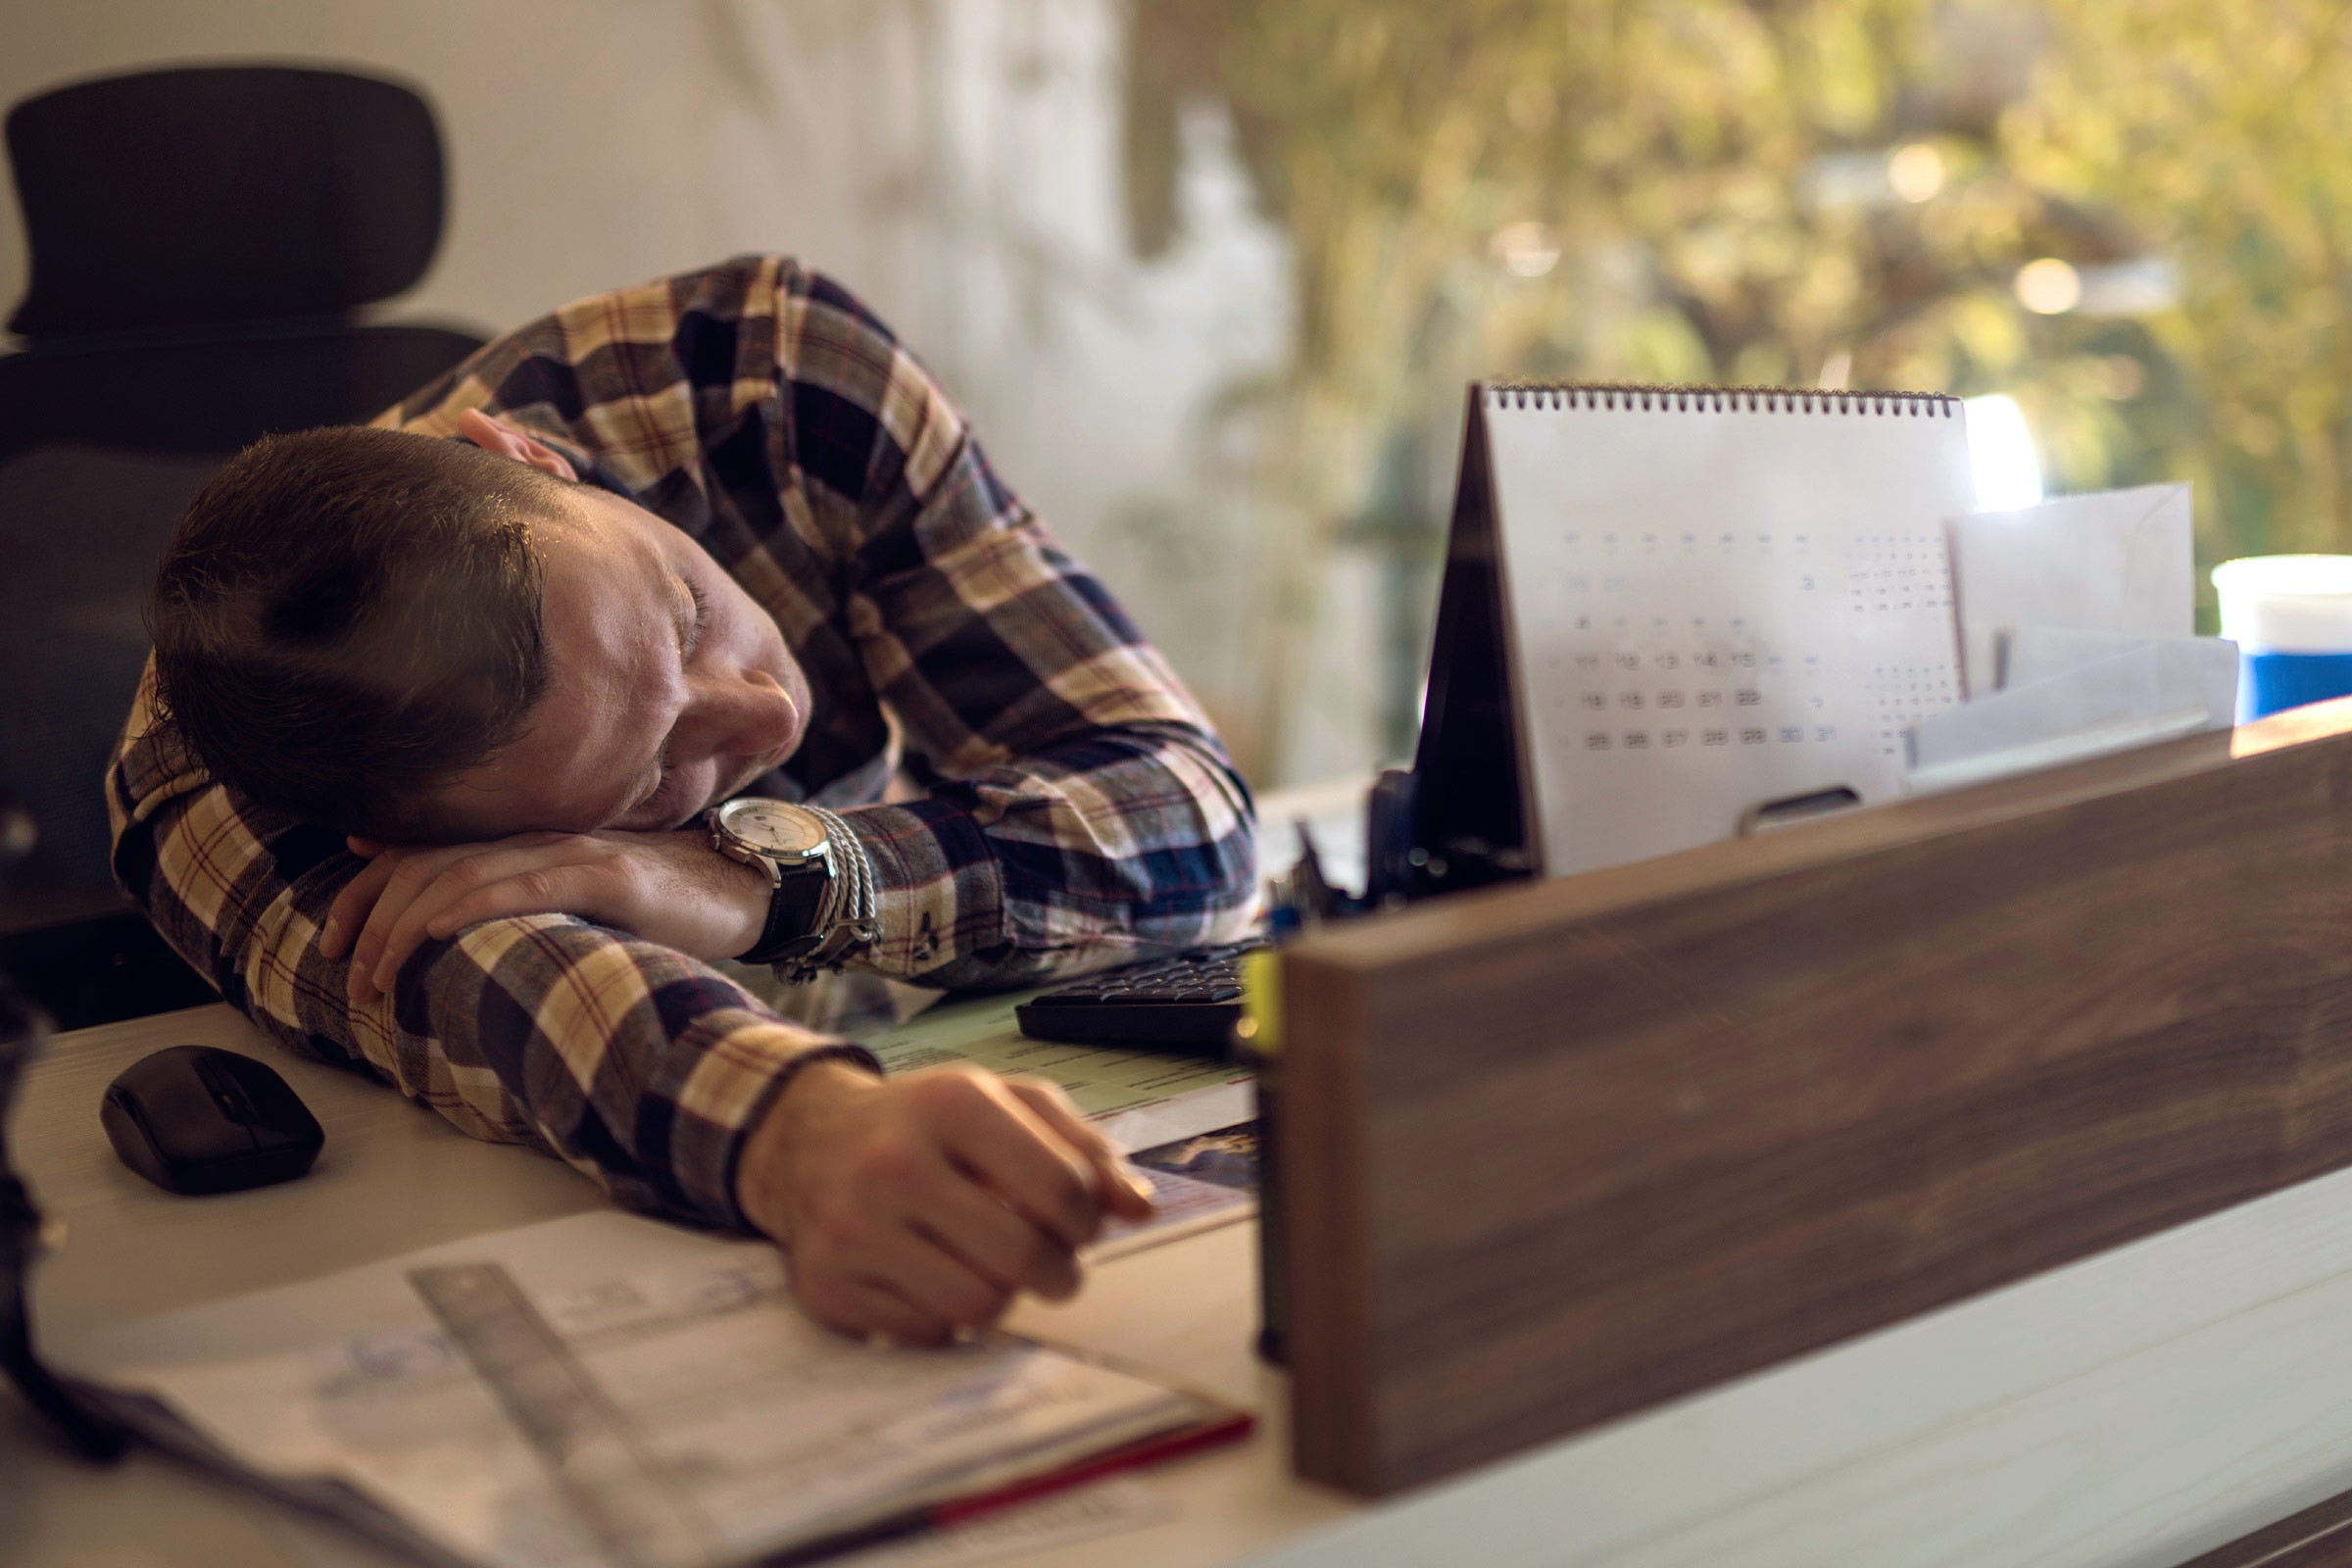 08-tricks-taking-nap-man-work-desk.jpg